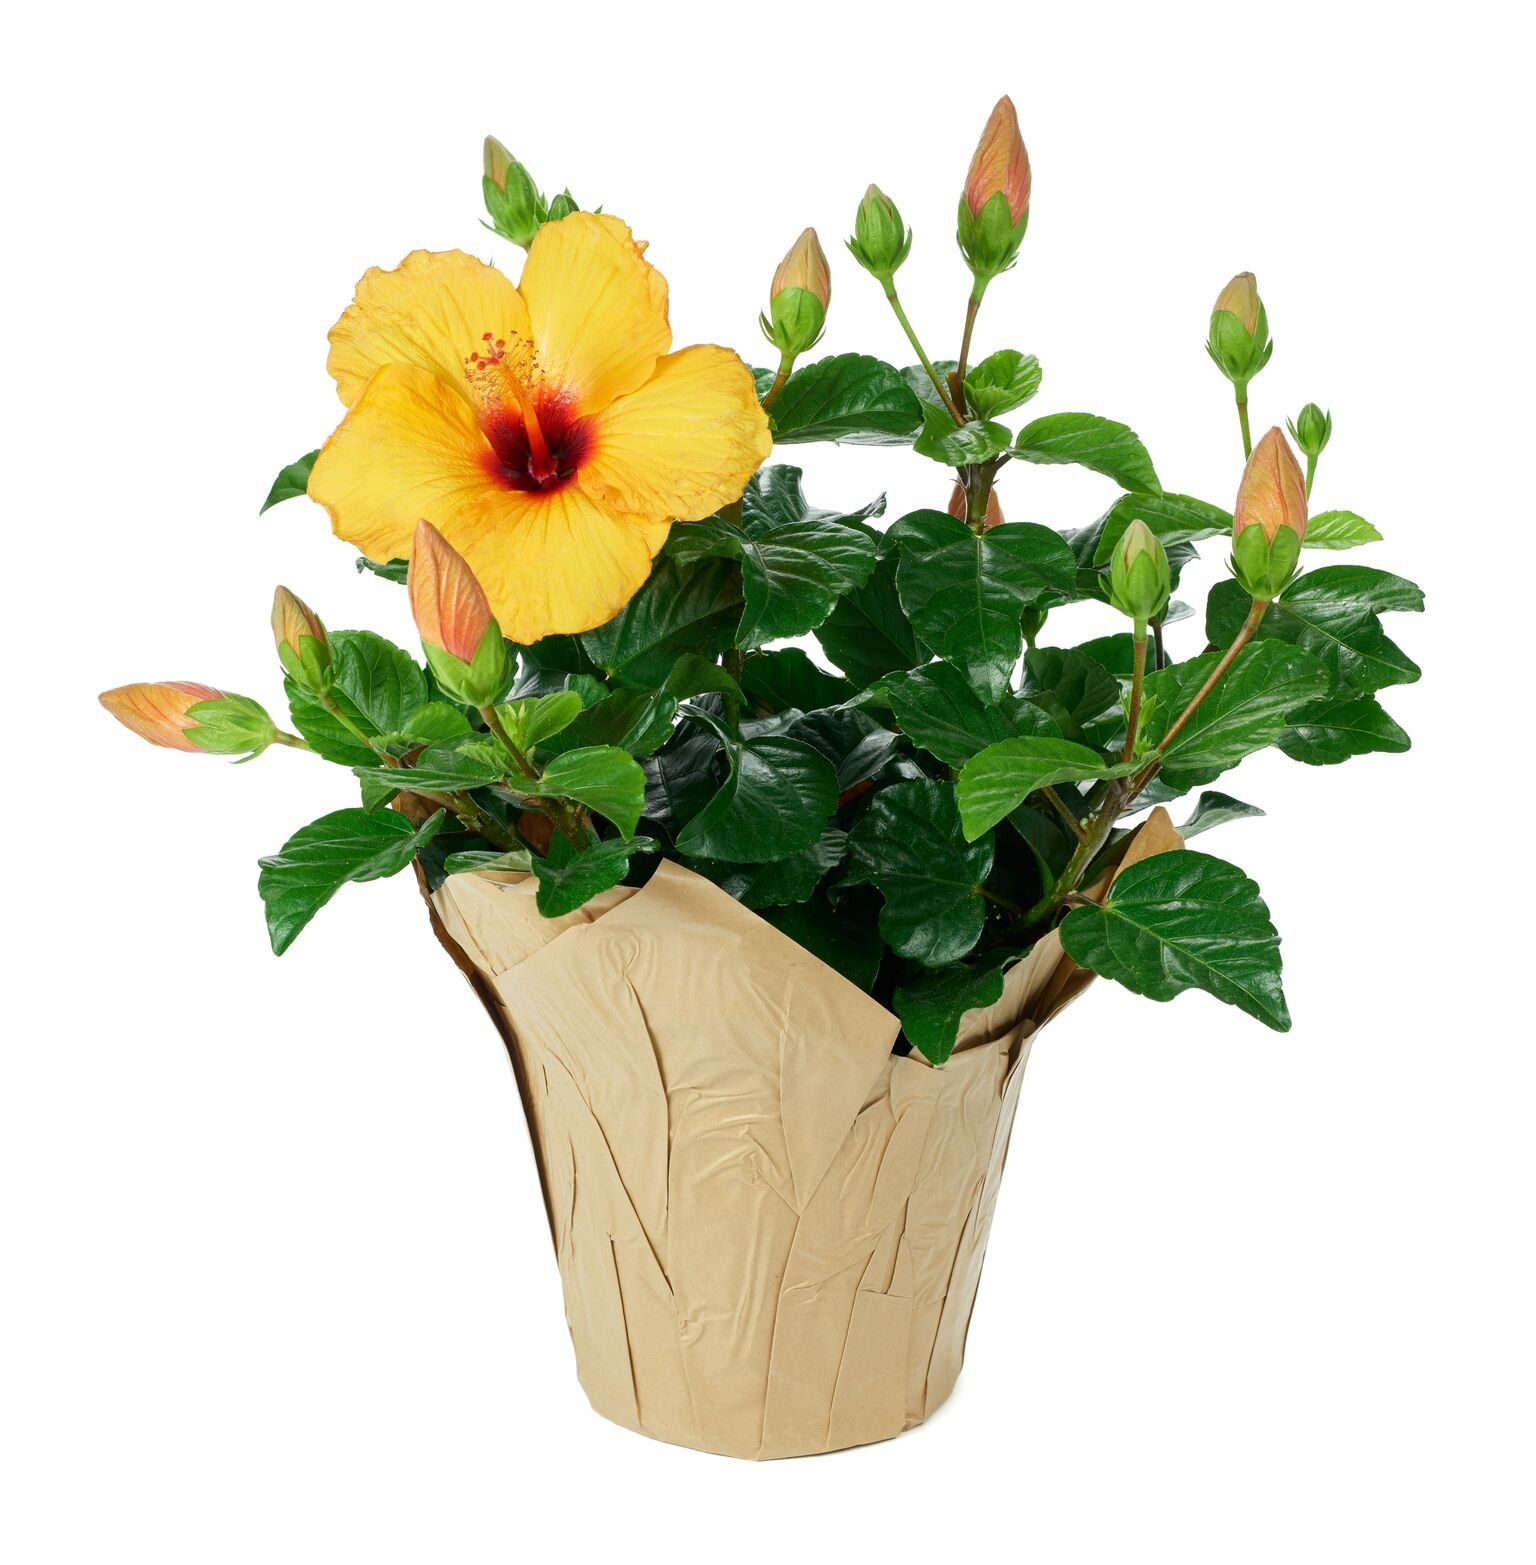 Cheap hibiscus plant care find hibiscus plant care deals on line at get quotations kabloom live plant collection yellow hibiscus plant 15 18 inches tall in izmirmasajfo